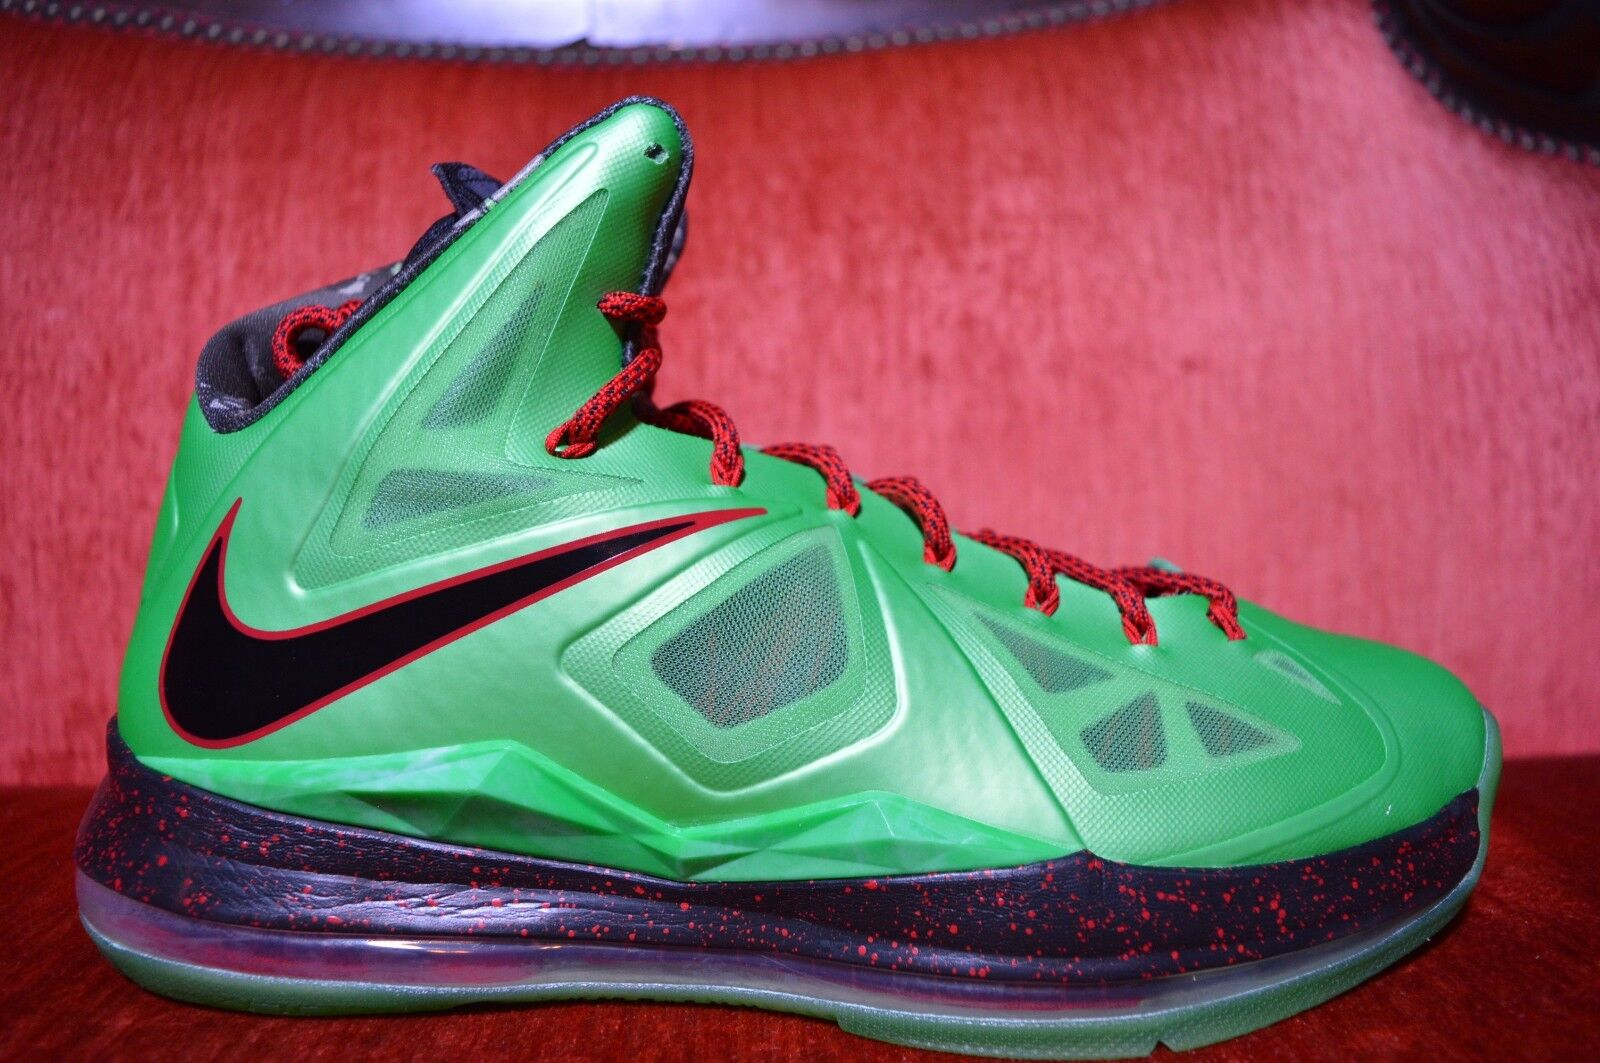 CLEAN Nike Lebron X 10 CUTTING JADE Comfortable best-selling model of the brand